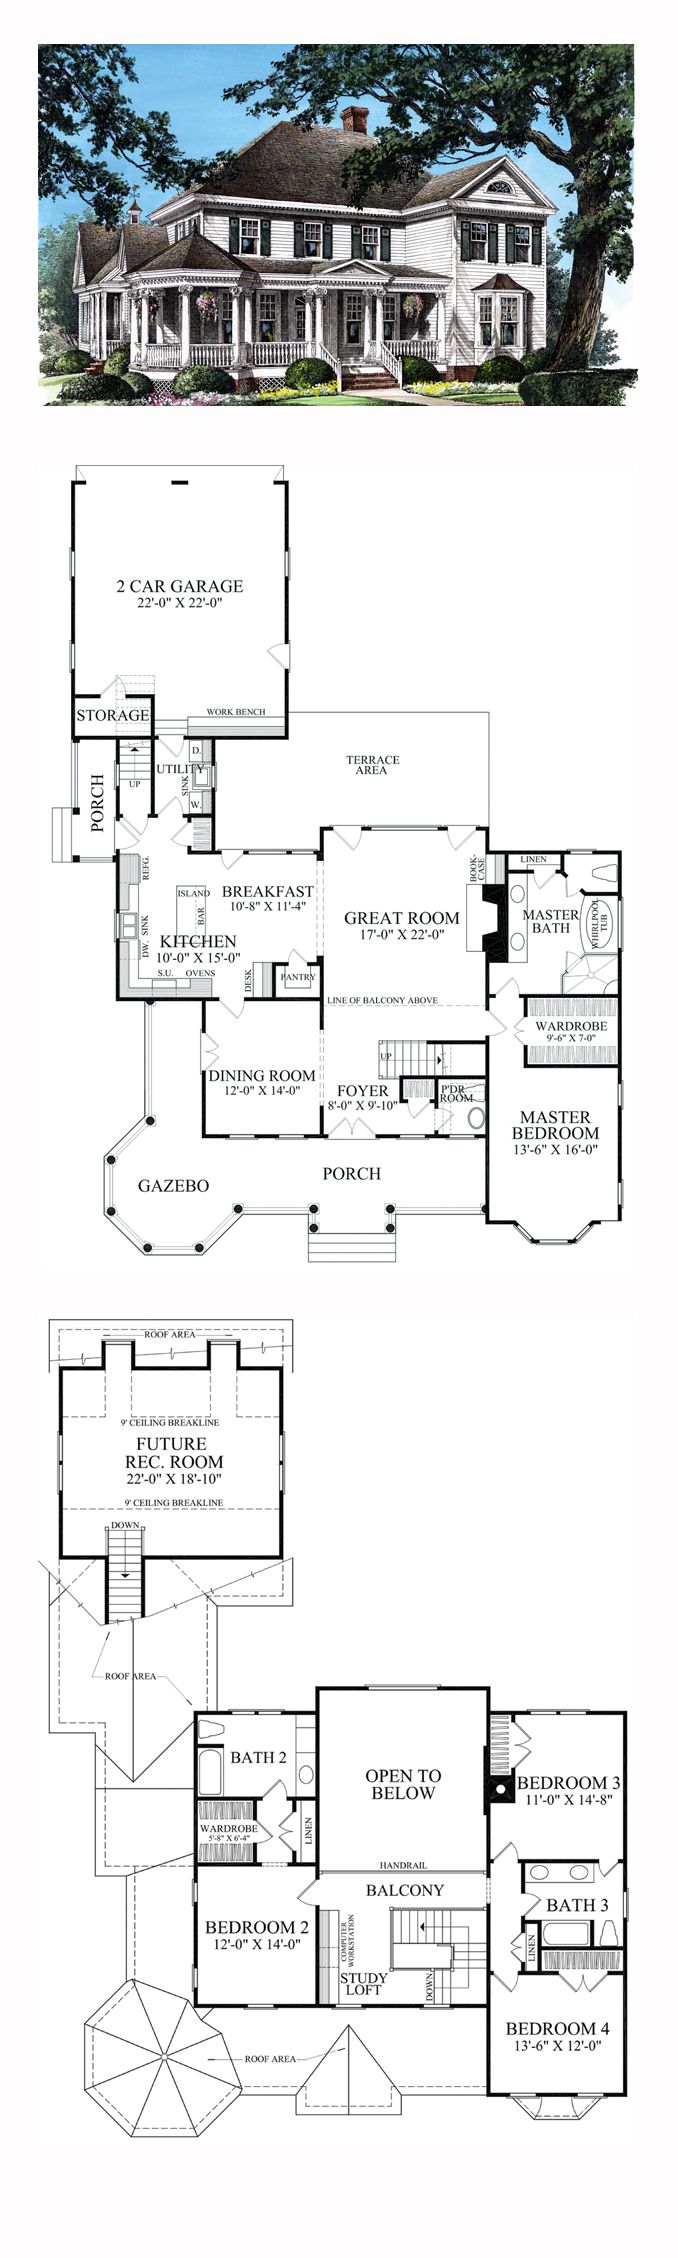 one of my favorites victorian style cool house plan id chp 47682